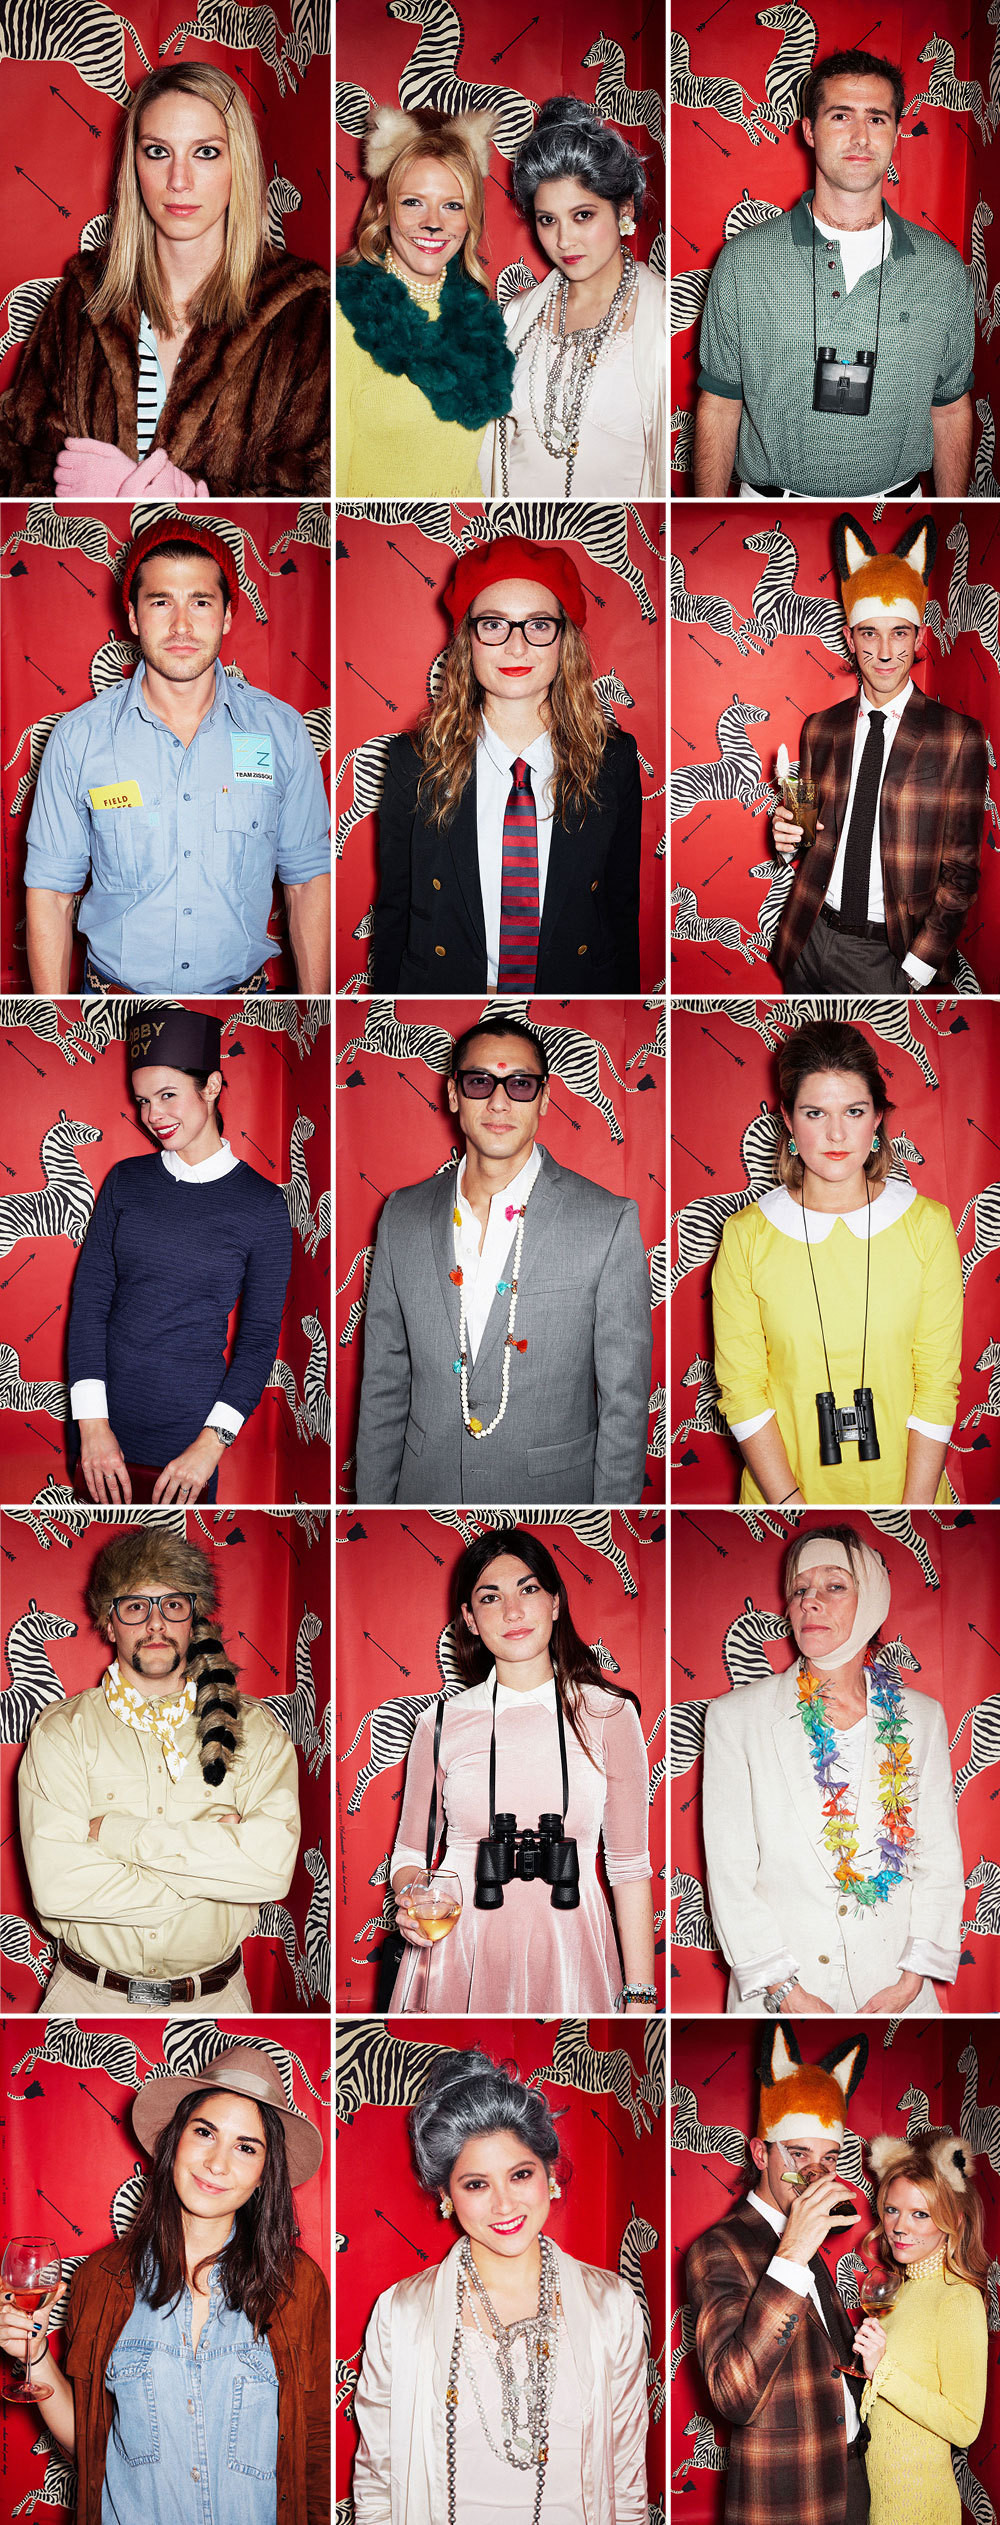 Guests strike a pose as their cinematic doppelgangers in a photo booth lined with Scalamandré wallpaper .